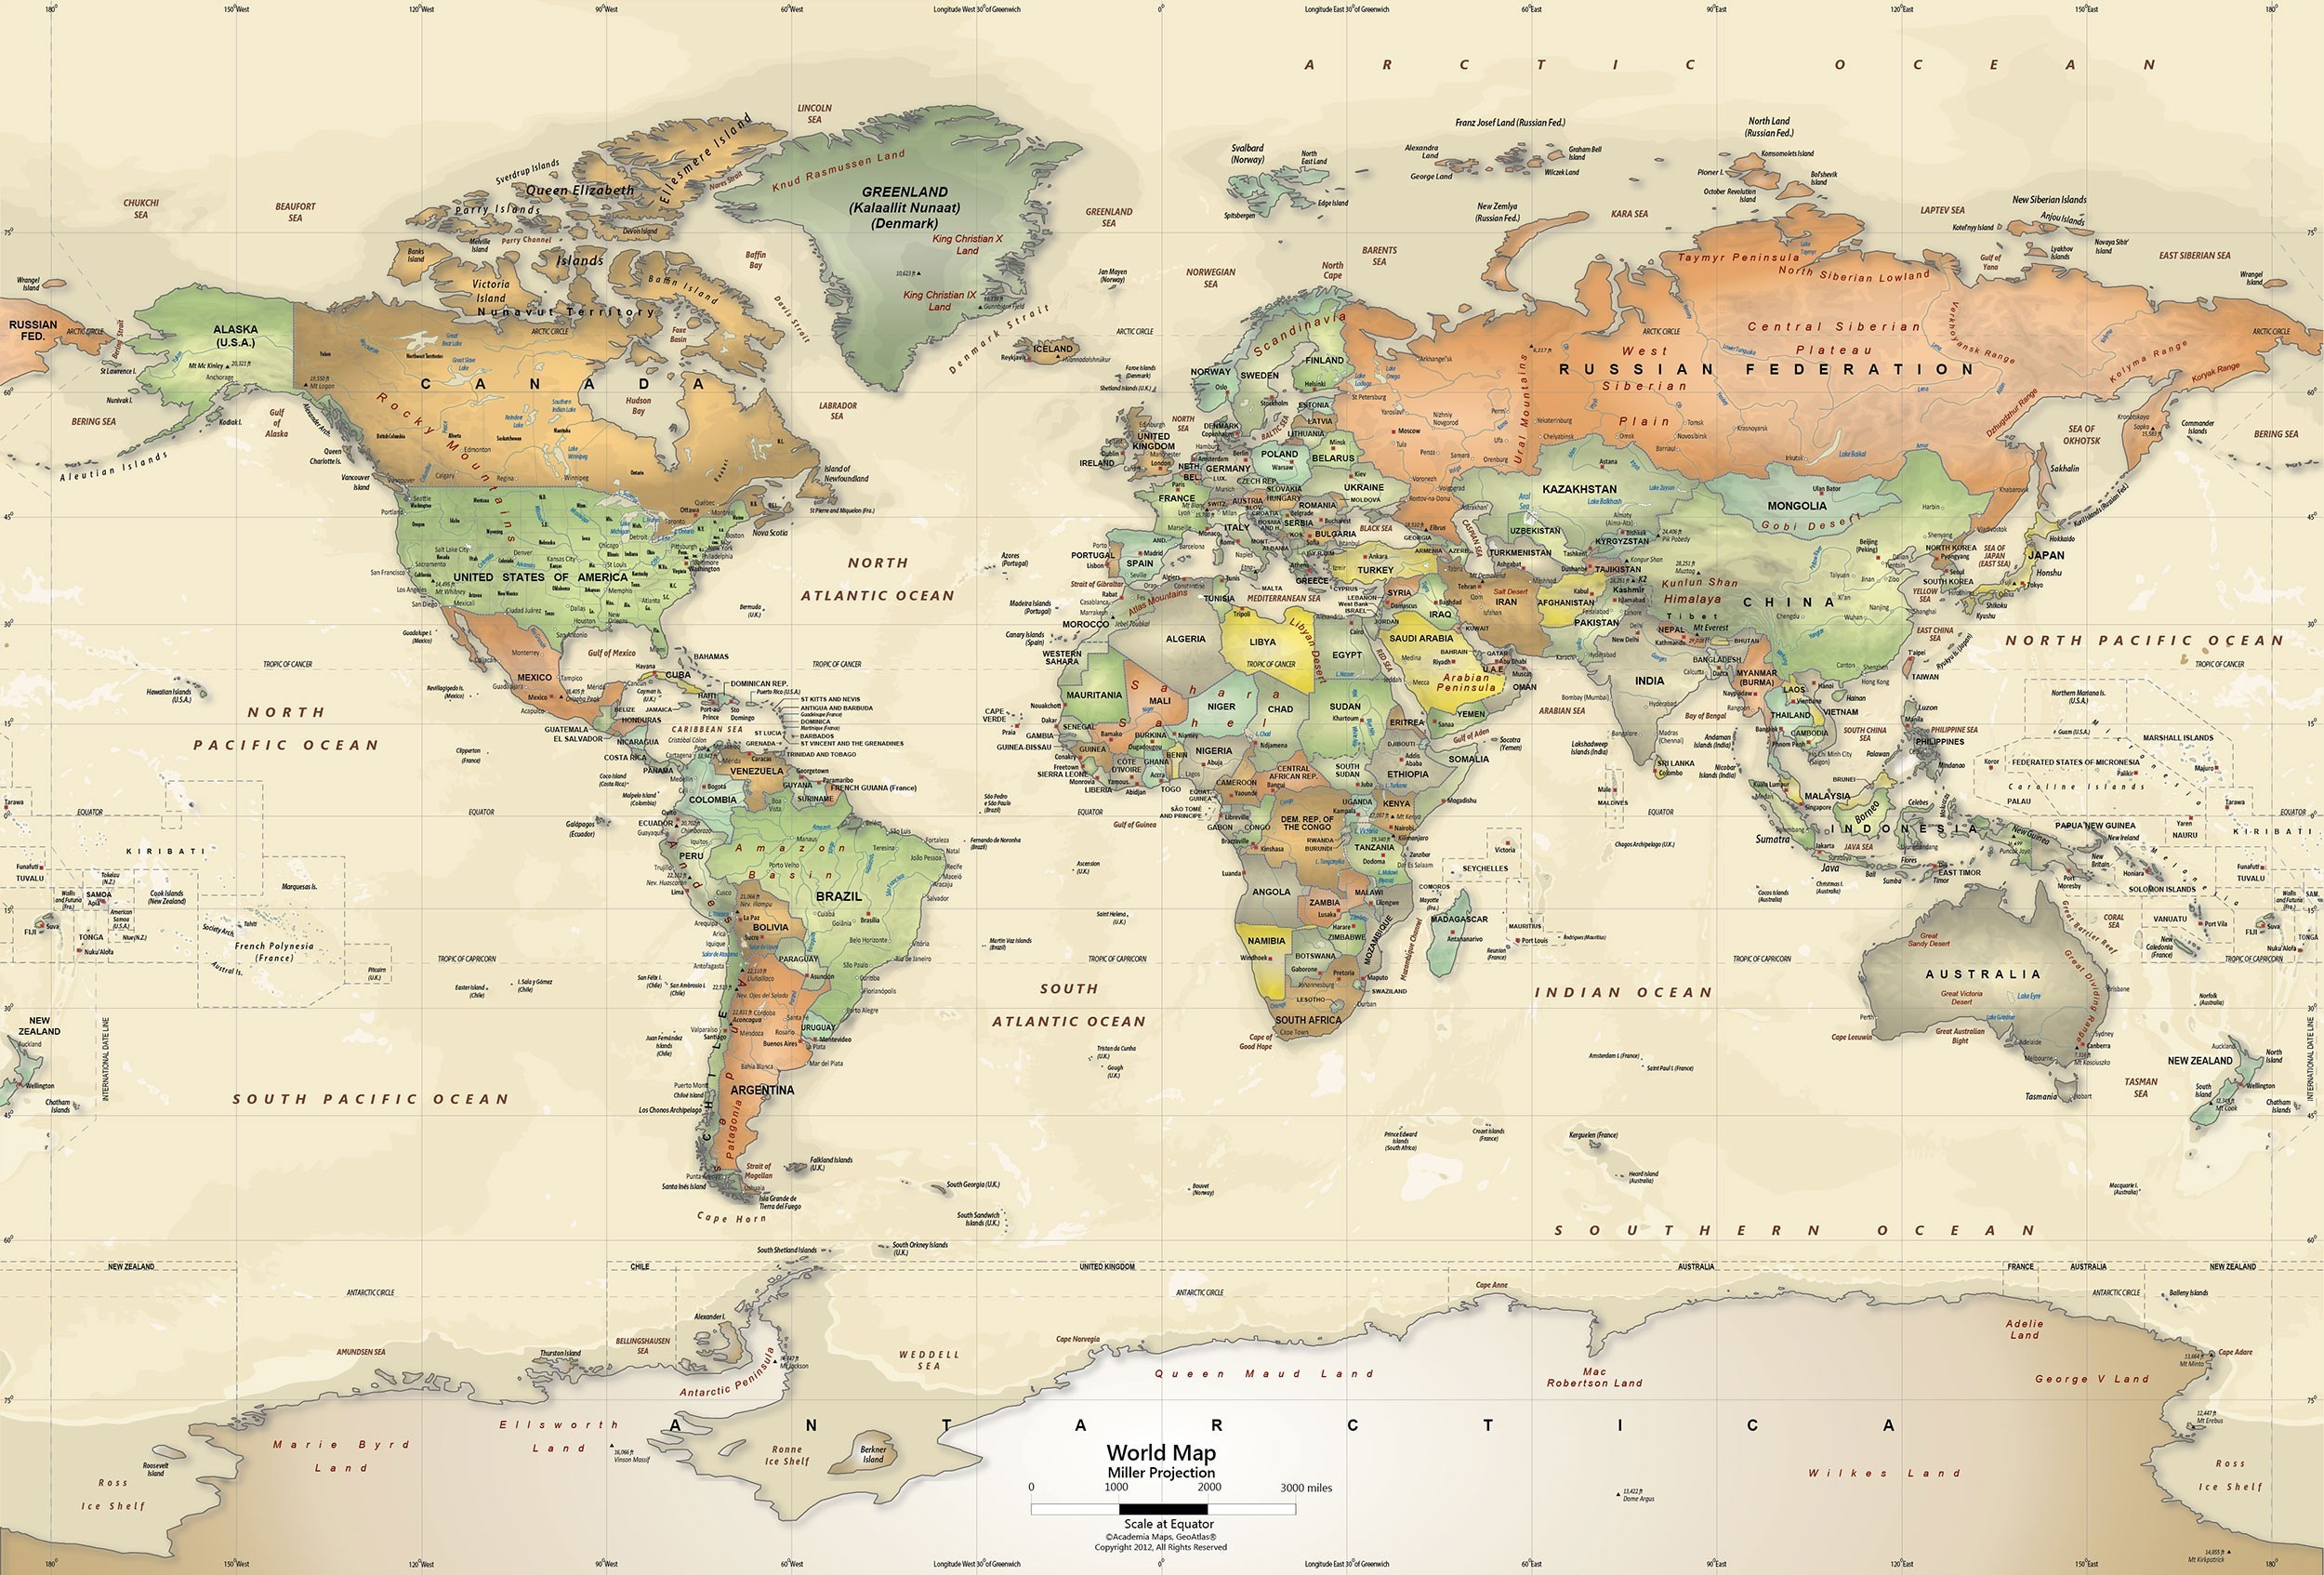 World map wallpapers high resolution 66 background pictures 1920x1080 hi res world map wallpaper best 43 best inspirational high quality world map backgrounds download gumiabroncs Image collections